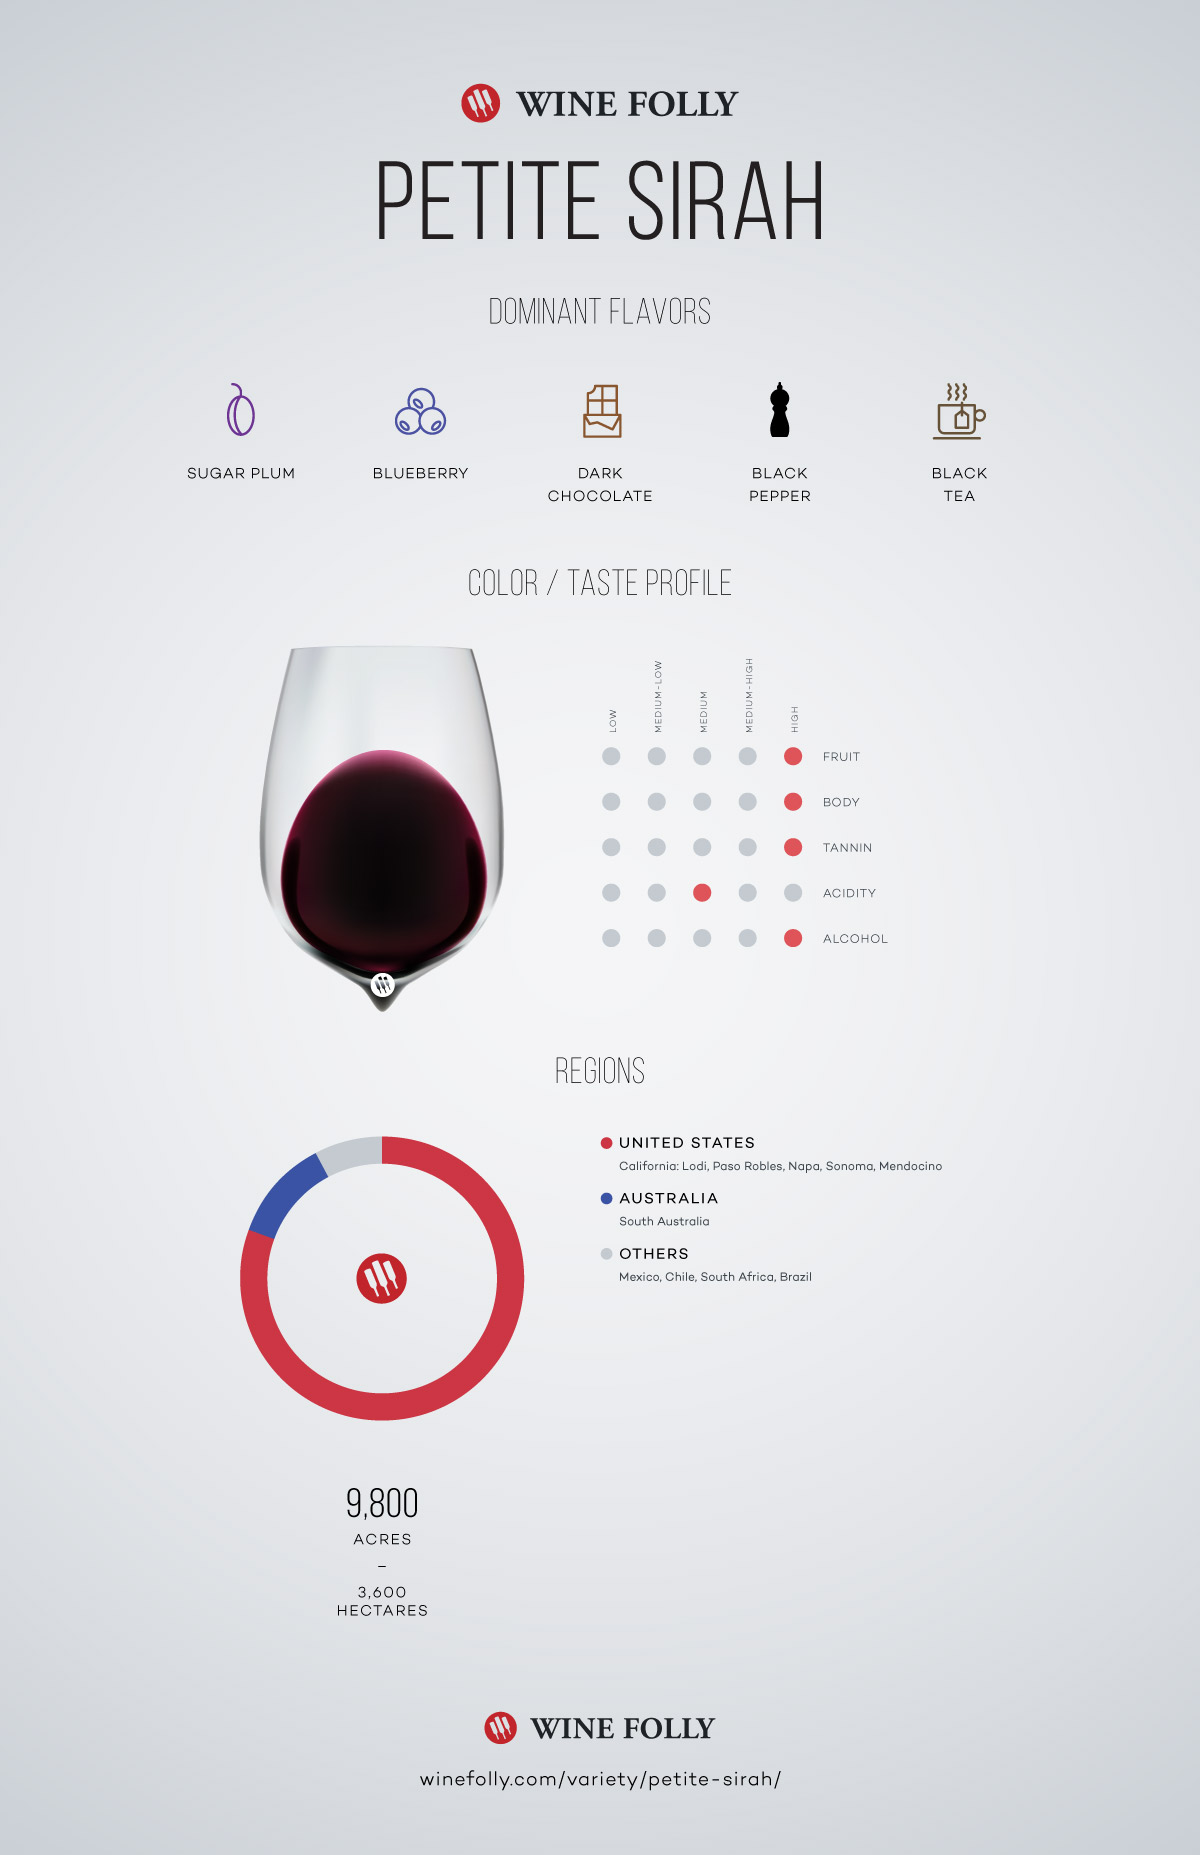 Petite Sirah Taste, regional distribution infographic by Wine Folly